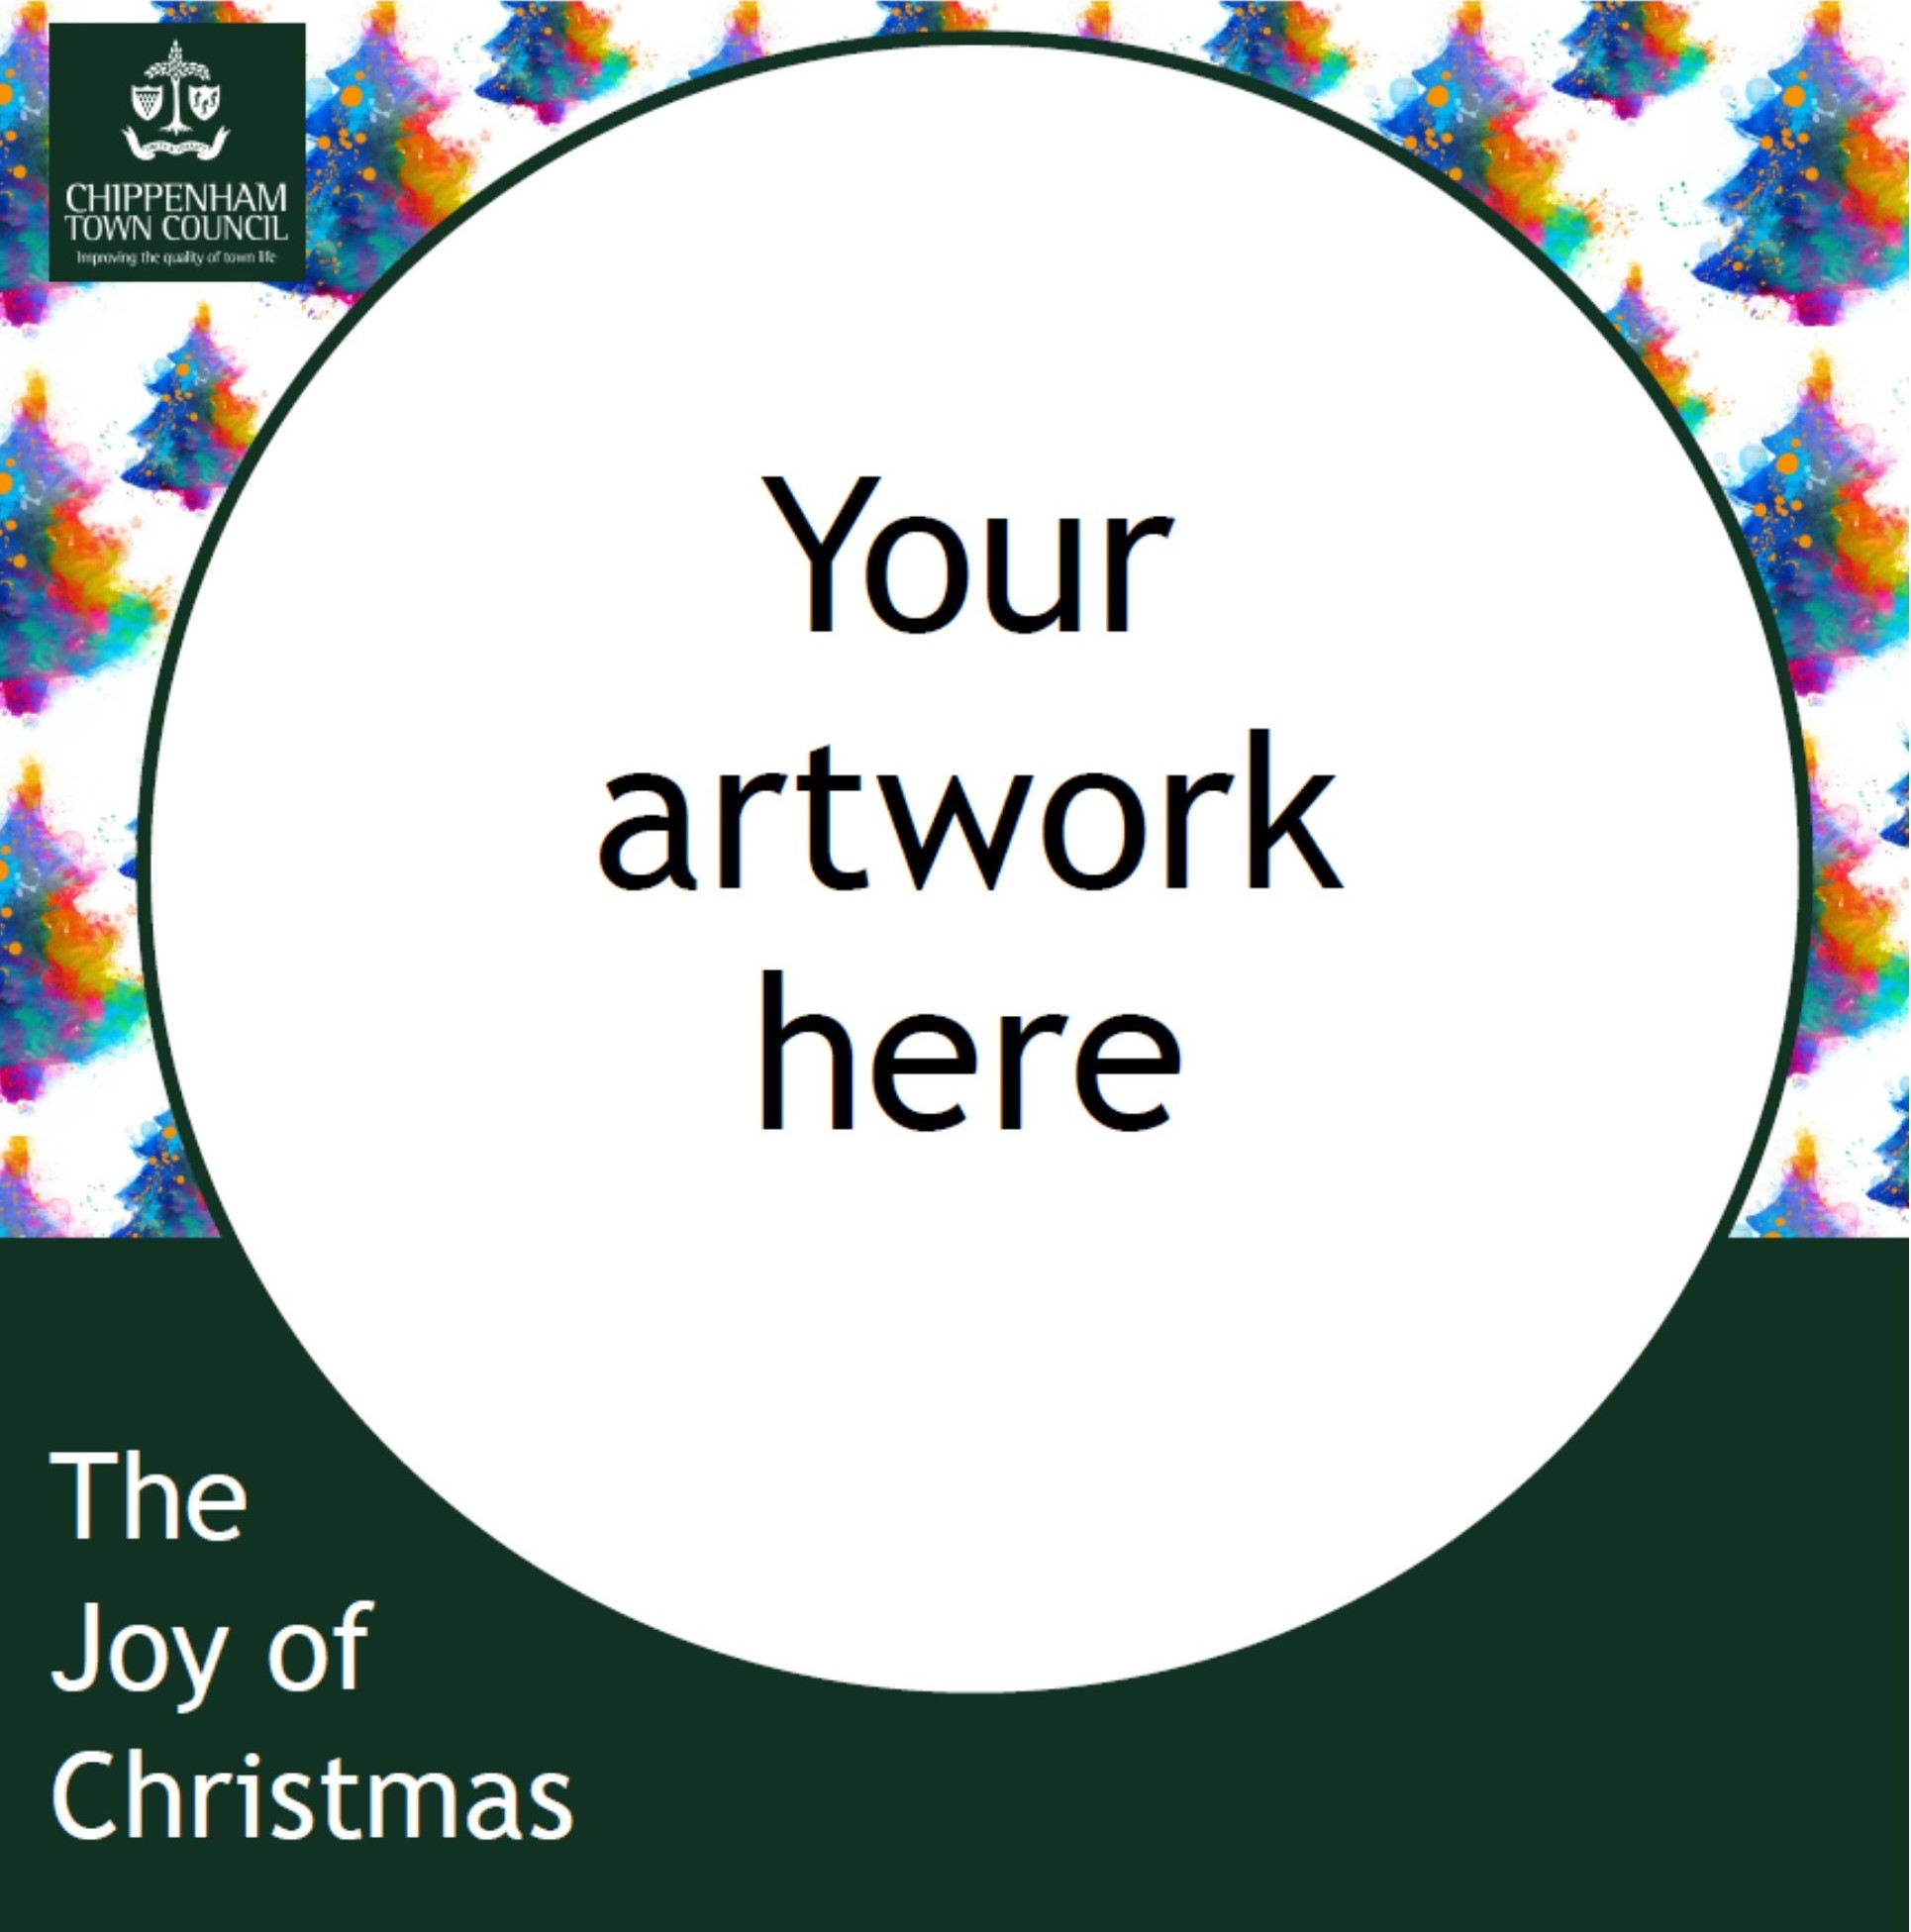 square image with white image reading your artwork here. Background of handrawn Christmas trees, Chippenham Town Council logo and The Joy of Christmas